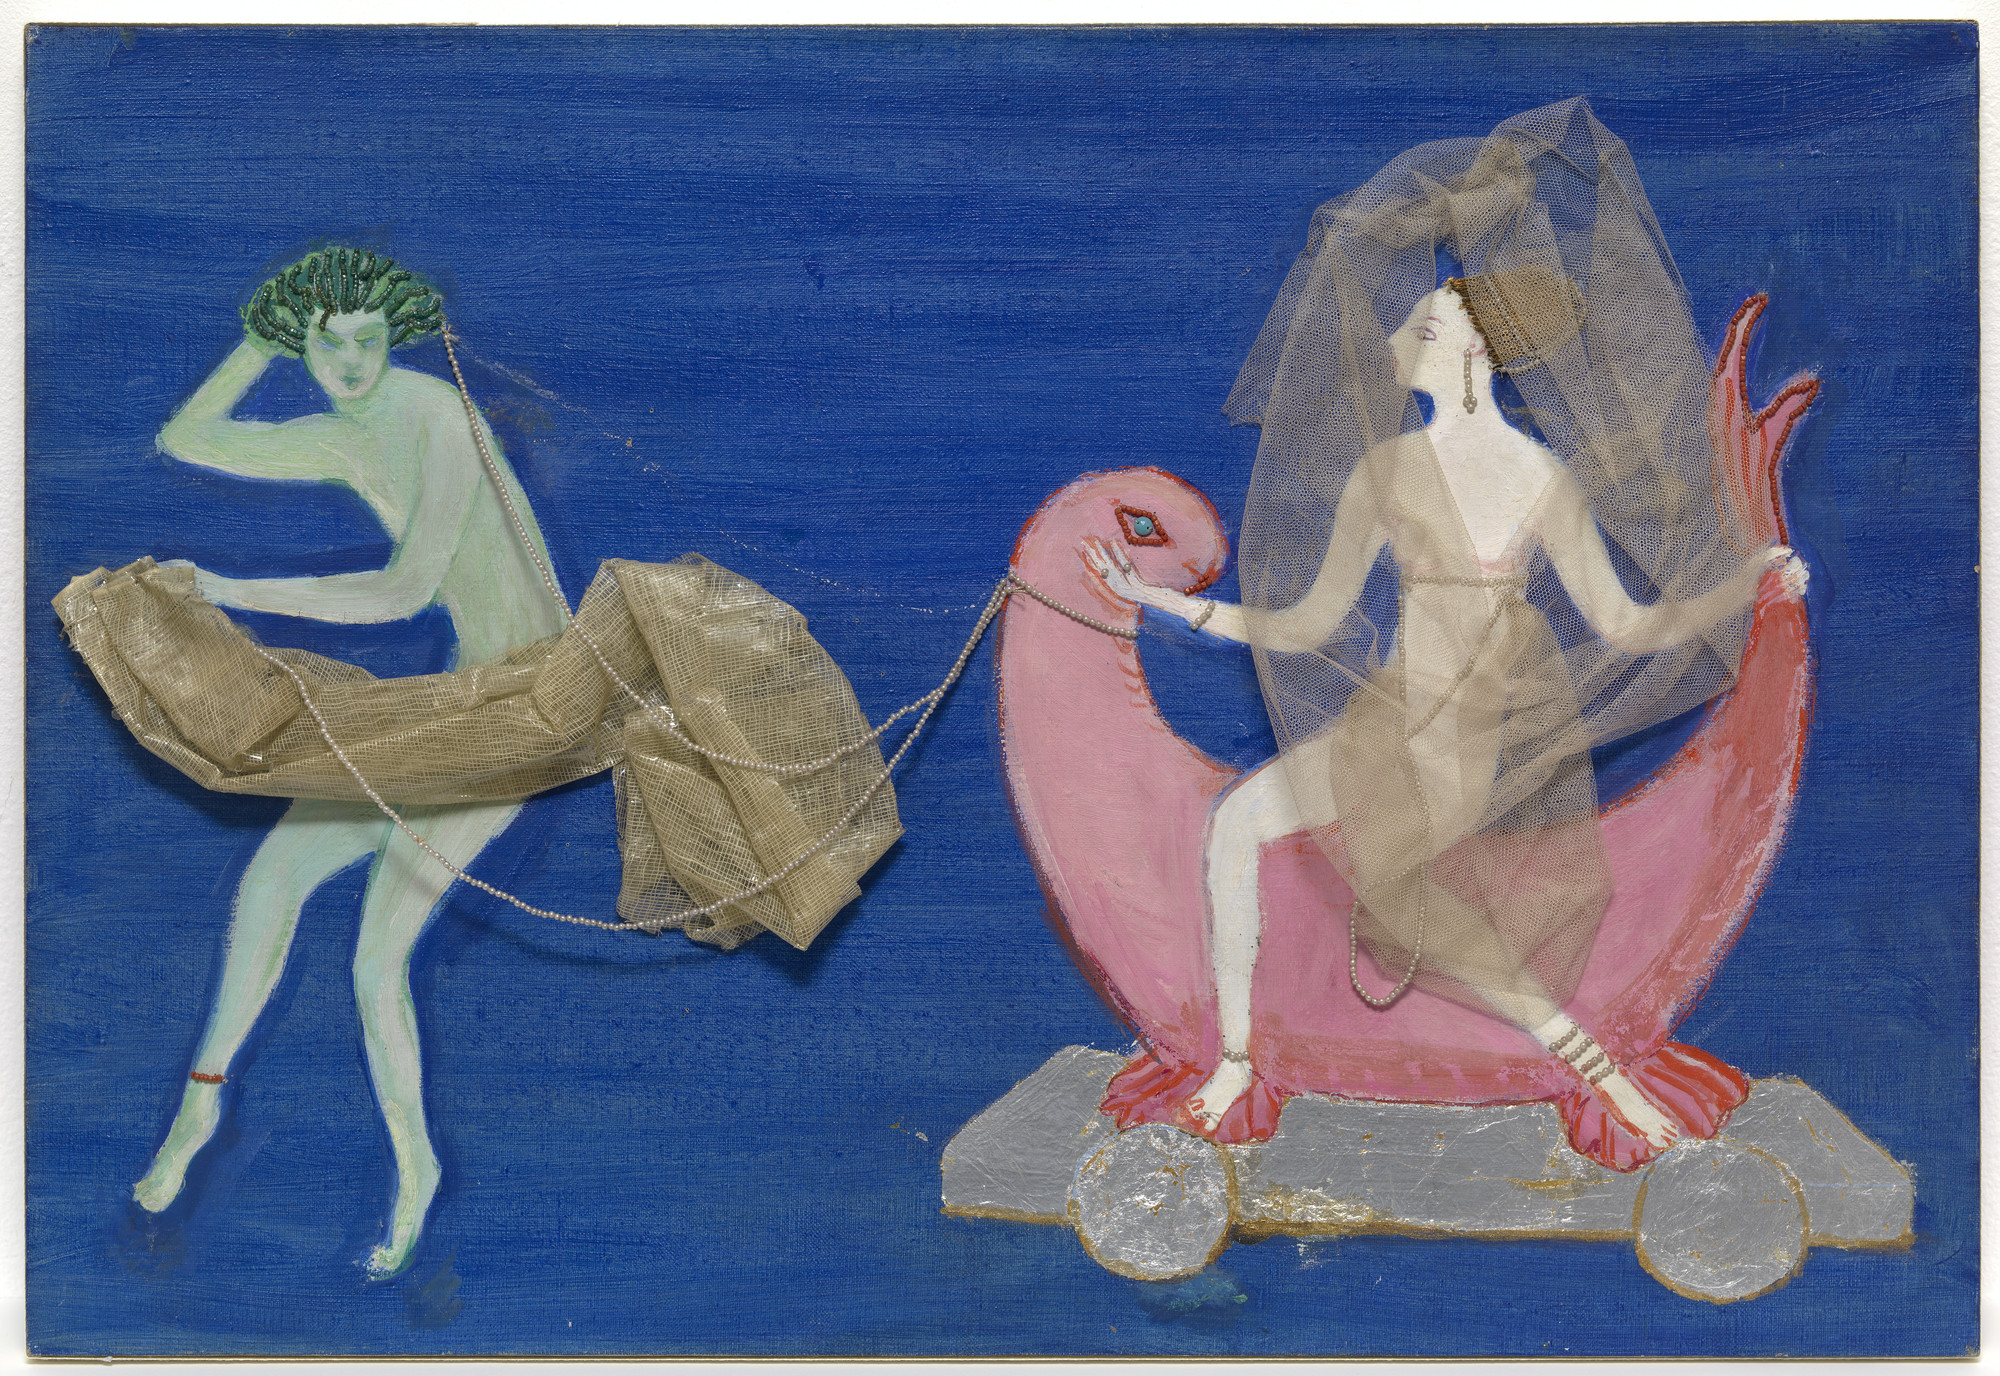 Florine Stettheimer. Costume design (Wave Drawing Aphrodite on a Dolphin) for artist's ballet Orphée of the Quat-z-arts. c. 1912